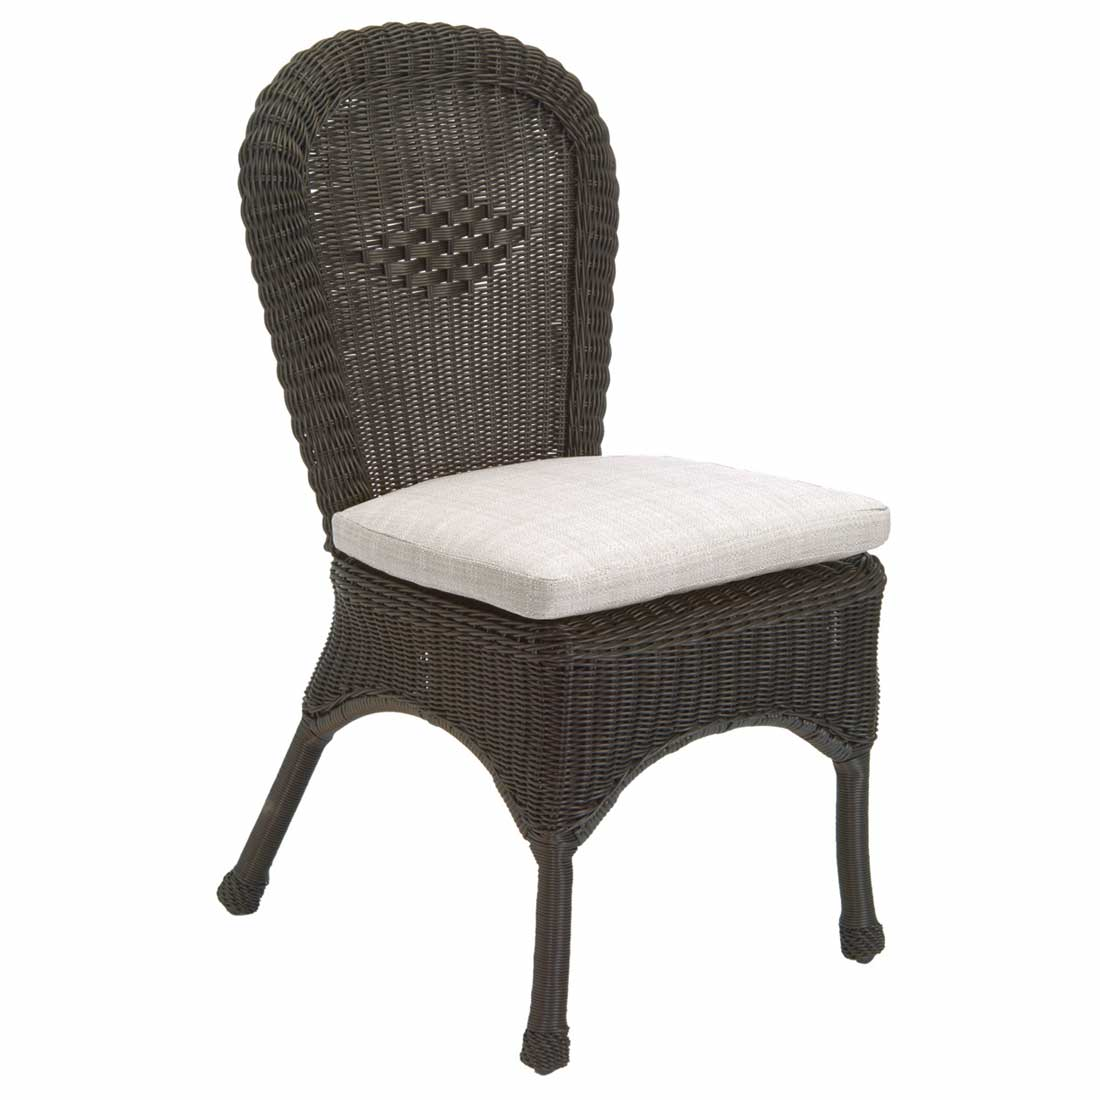 Wicker Side Chair Classic Outdoor Wicker Side Chair